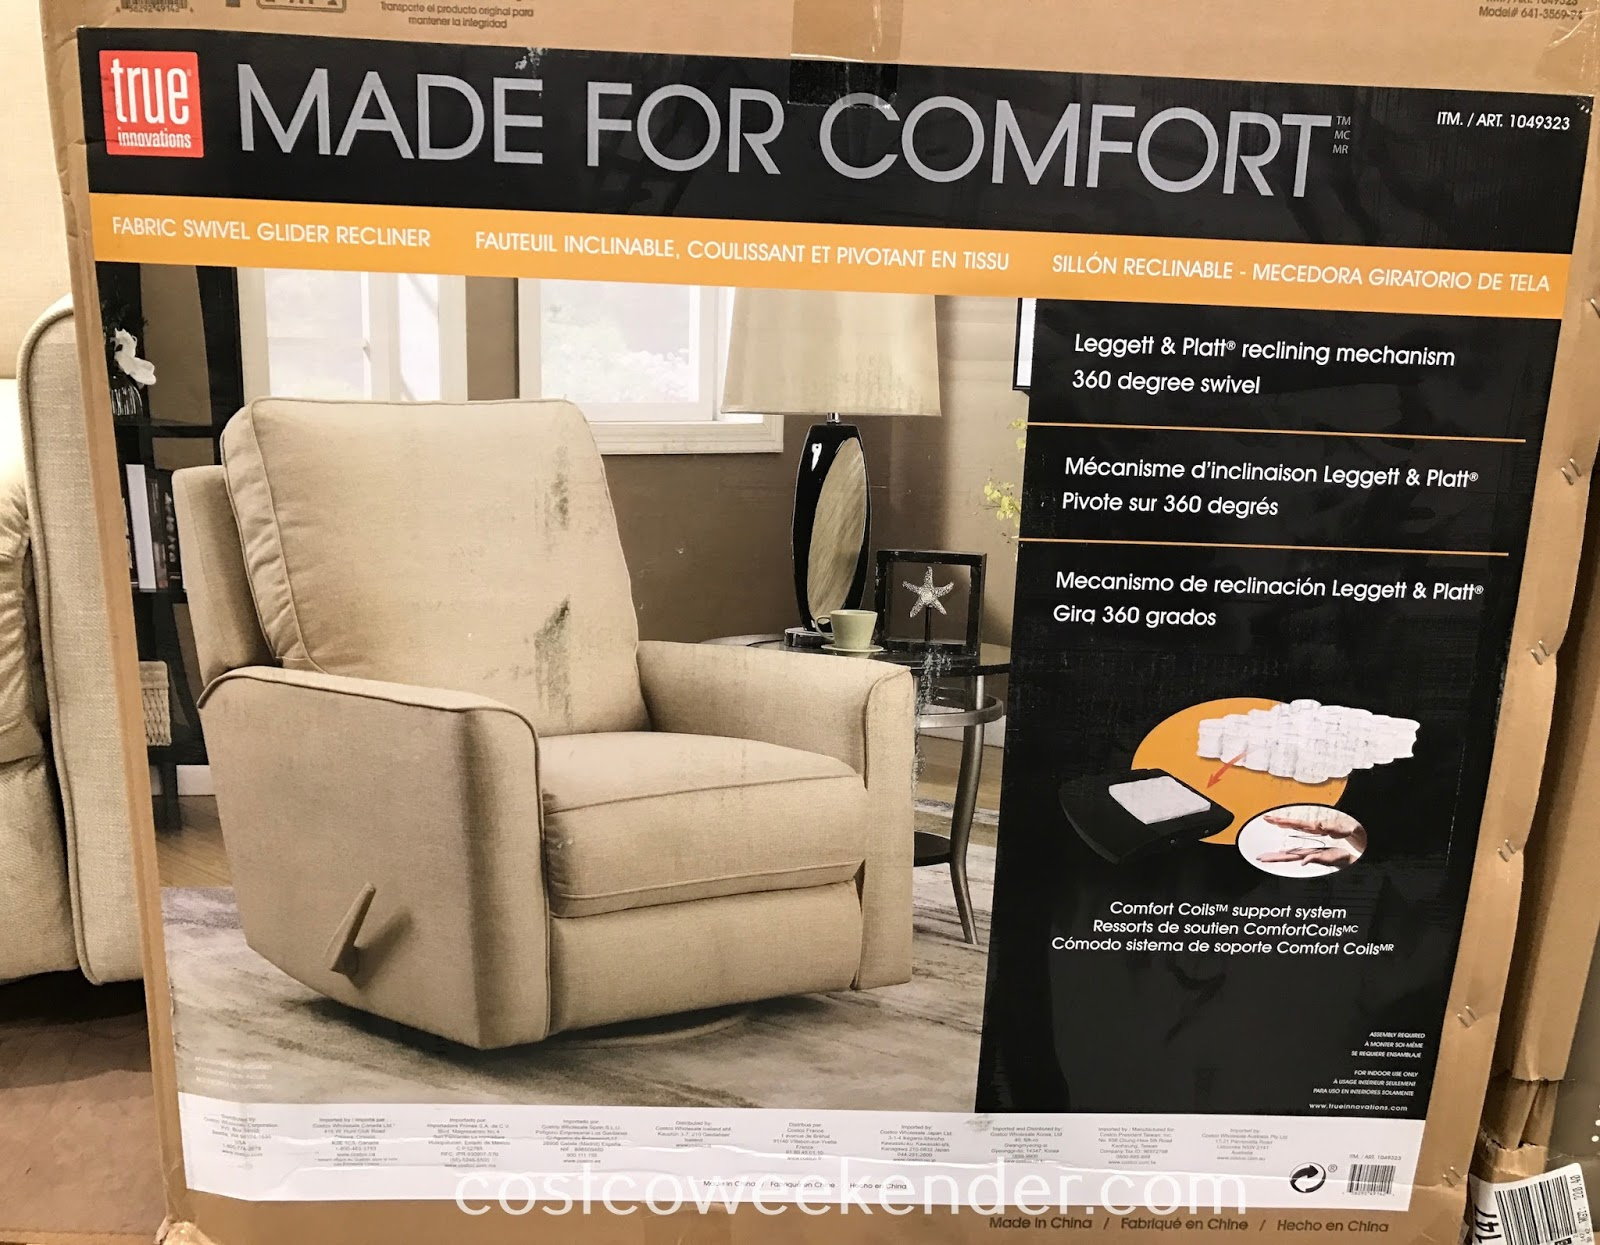 True Innovations Fabric Swivel Glider Recliner Chair | Costco Weekender Throughout Decker Ii Fabric Swivel Glider Recliners (Image 25 of 25)